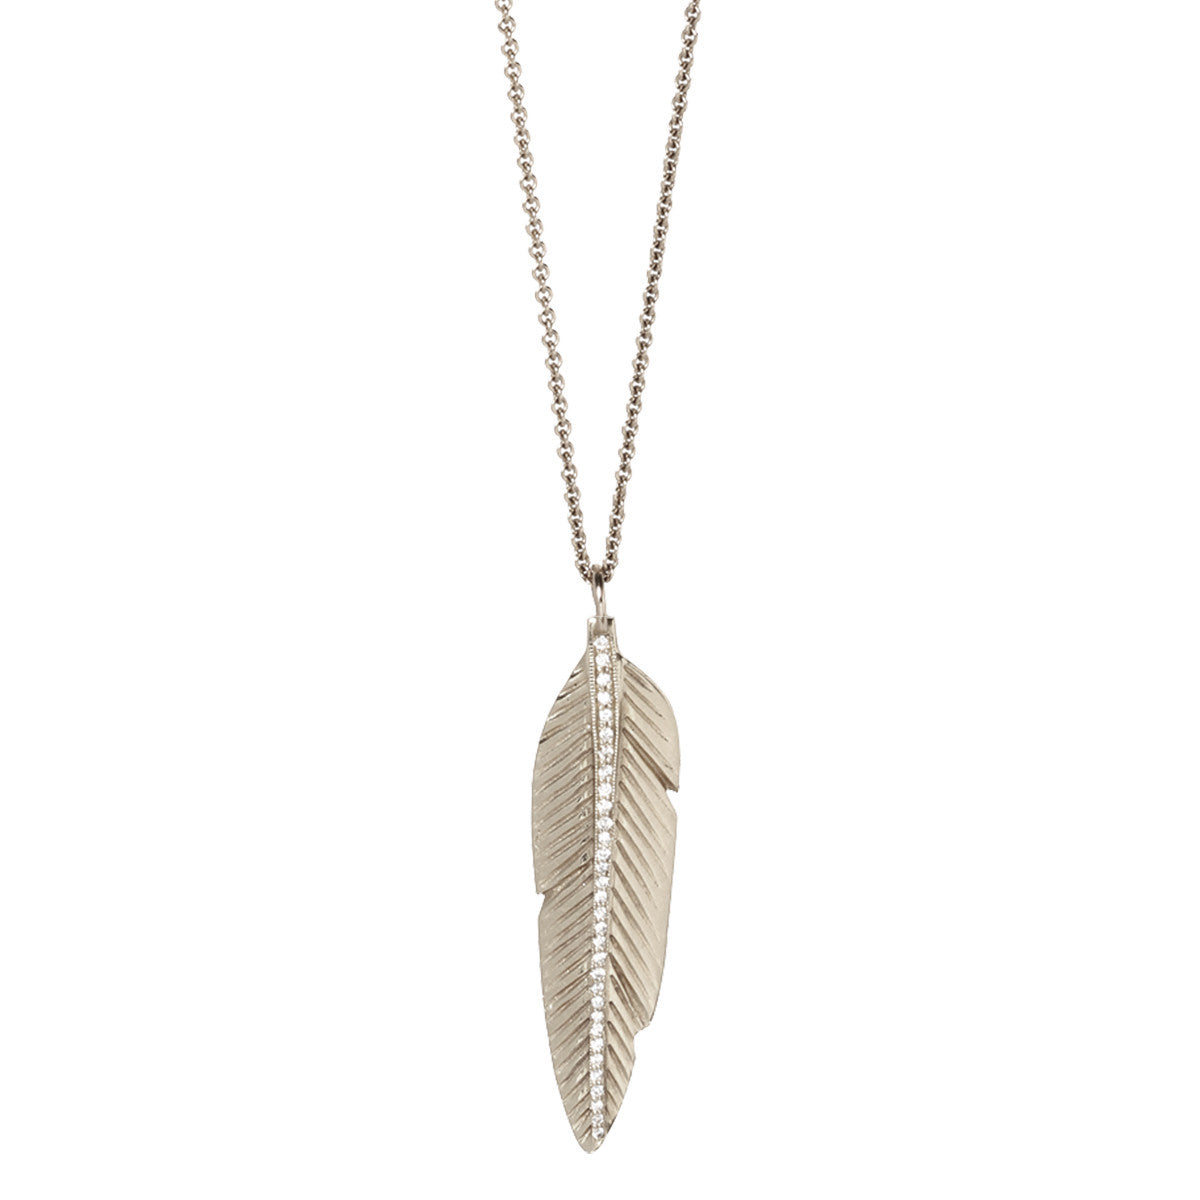 Zoë Chicco – 14k pave feather necklace f5261739205a